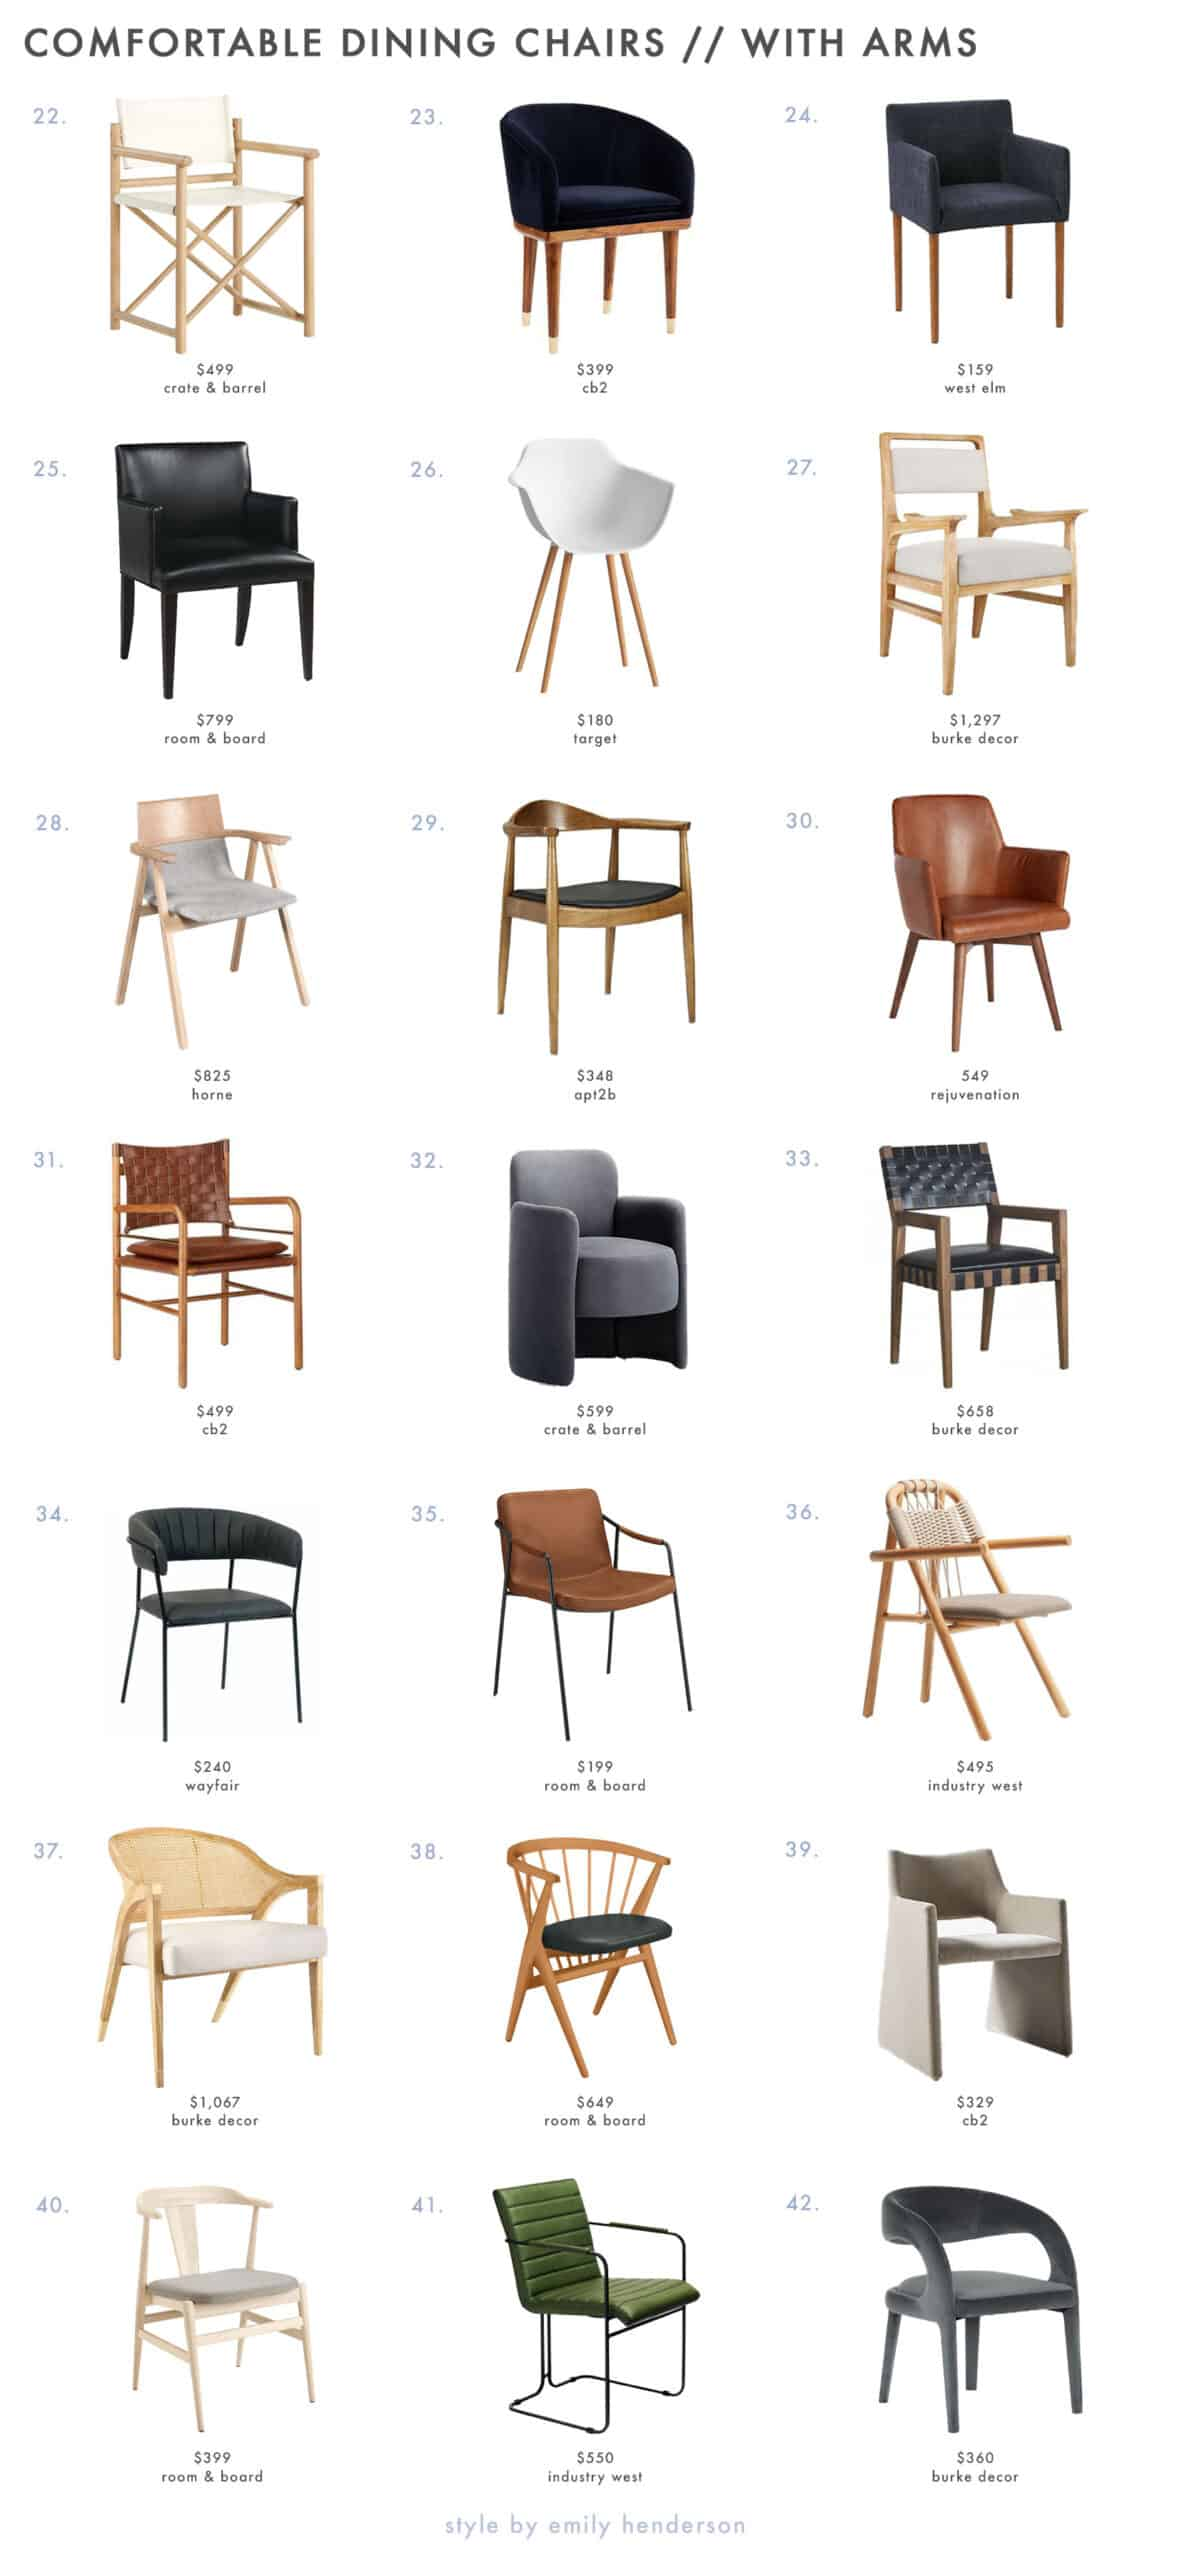 10 Dining Chairs that Meet All Your Comfort Needs + Rules for